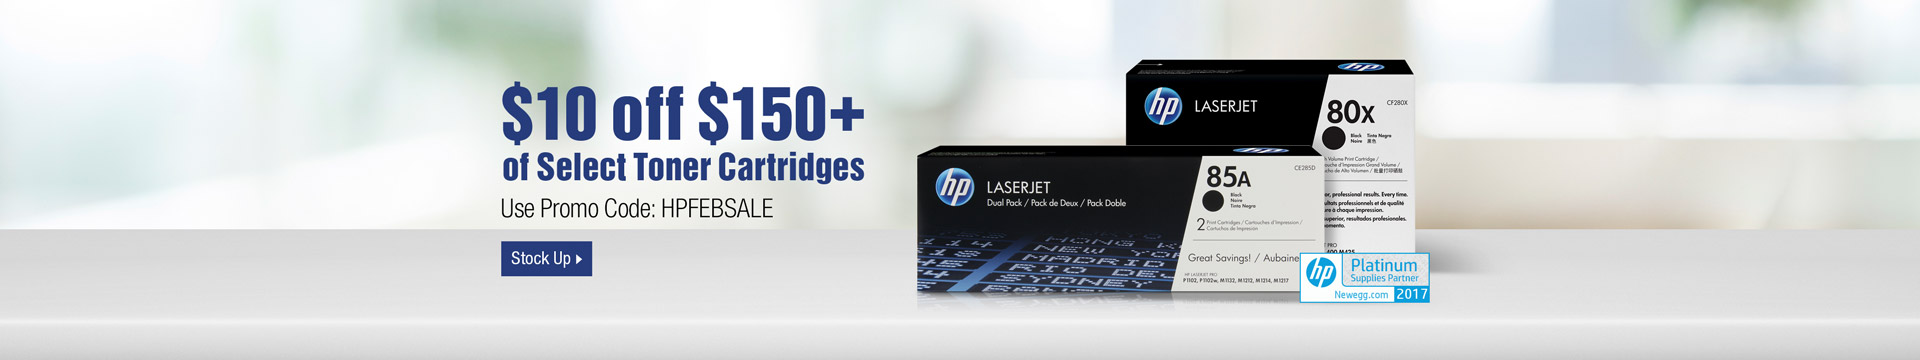 $10 off $150+ of Toner Cartridges